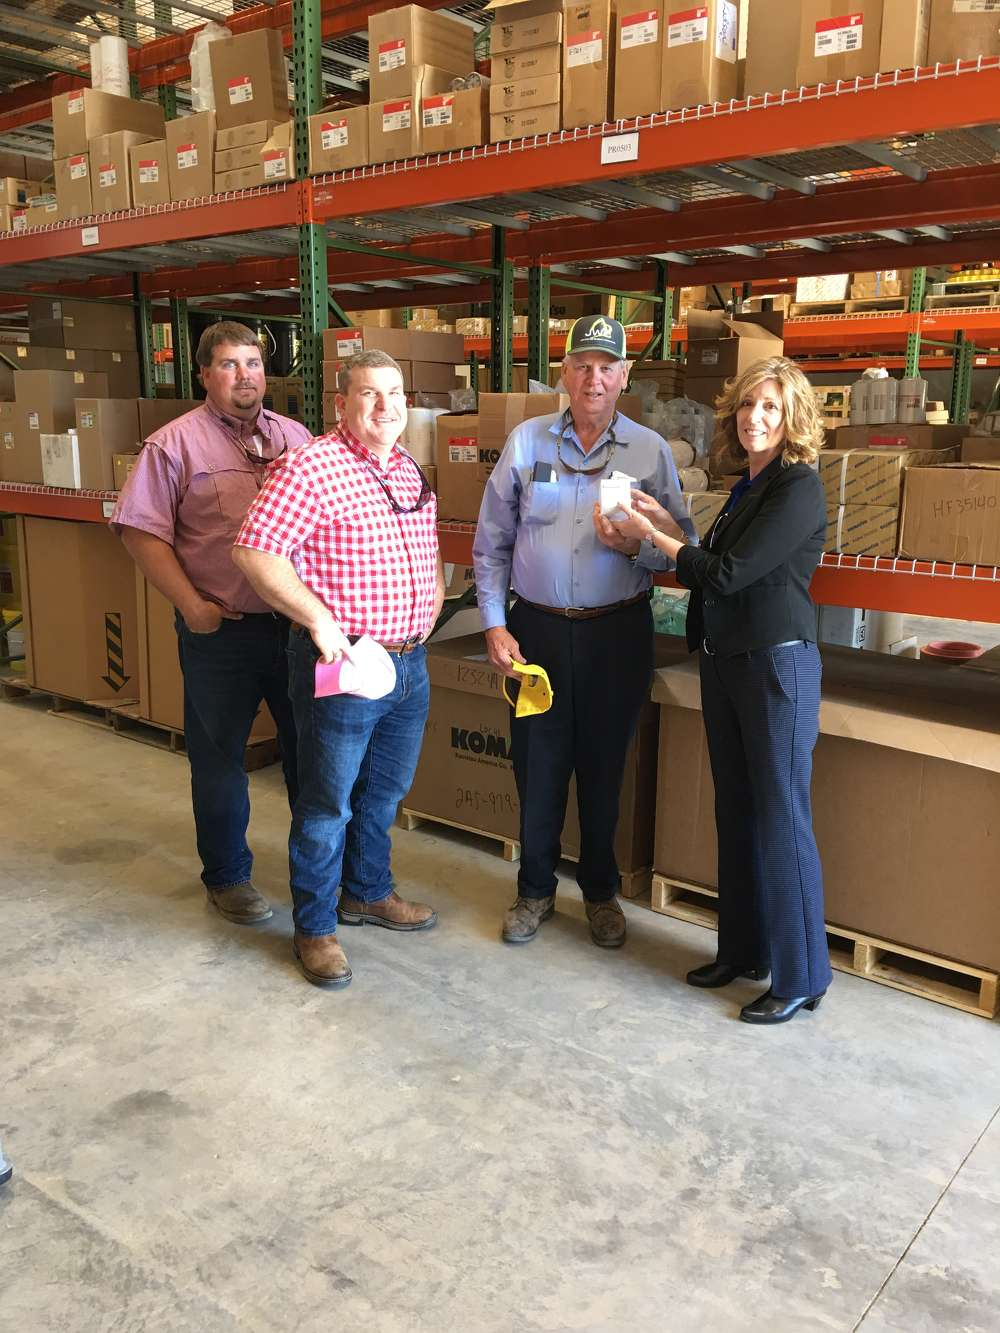 (L-R): James Gregory, Dan Hawkins and James White all with James White Construction in Mt Pleasant, S.C., participate in a guided tour of the parts facility from Lisa Chancey of Linder.